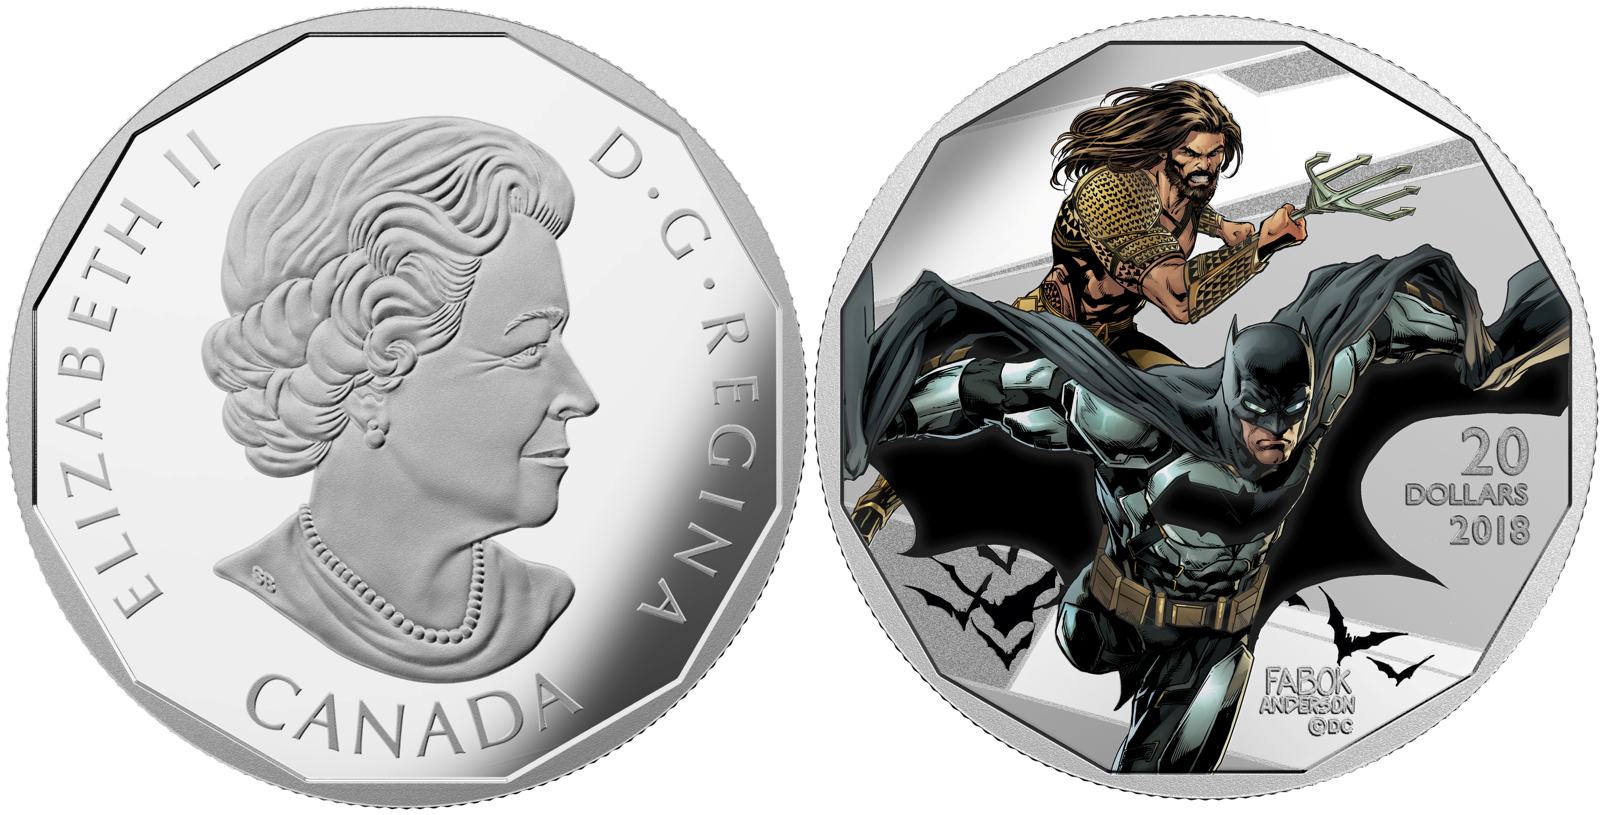 Obverse_and_Reverse_Batmand_and_Aquaman